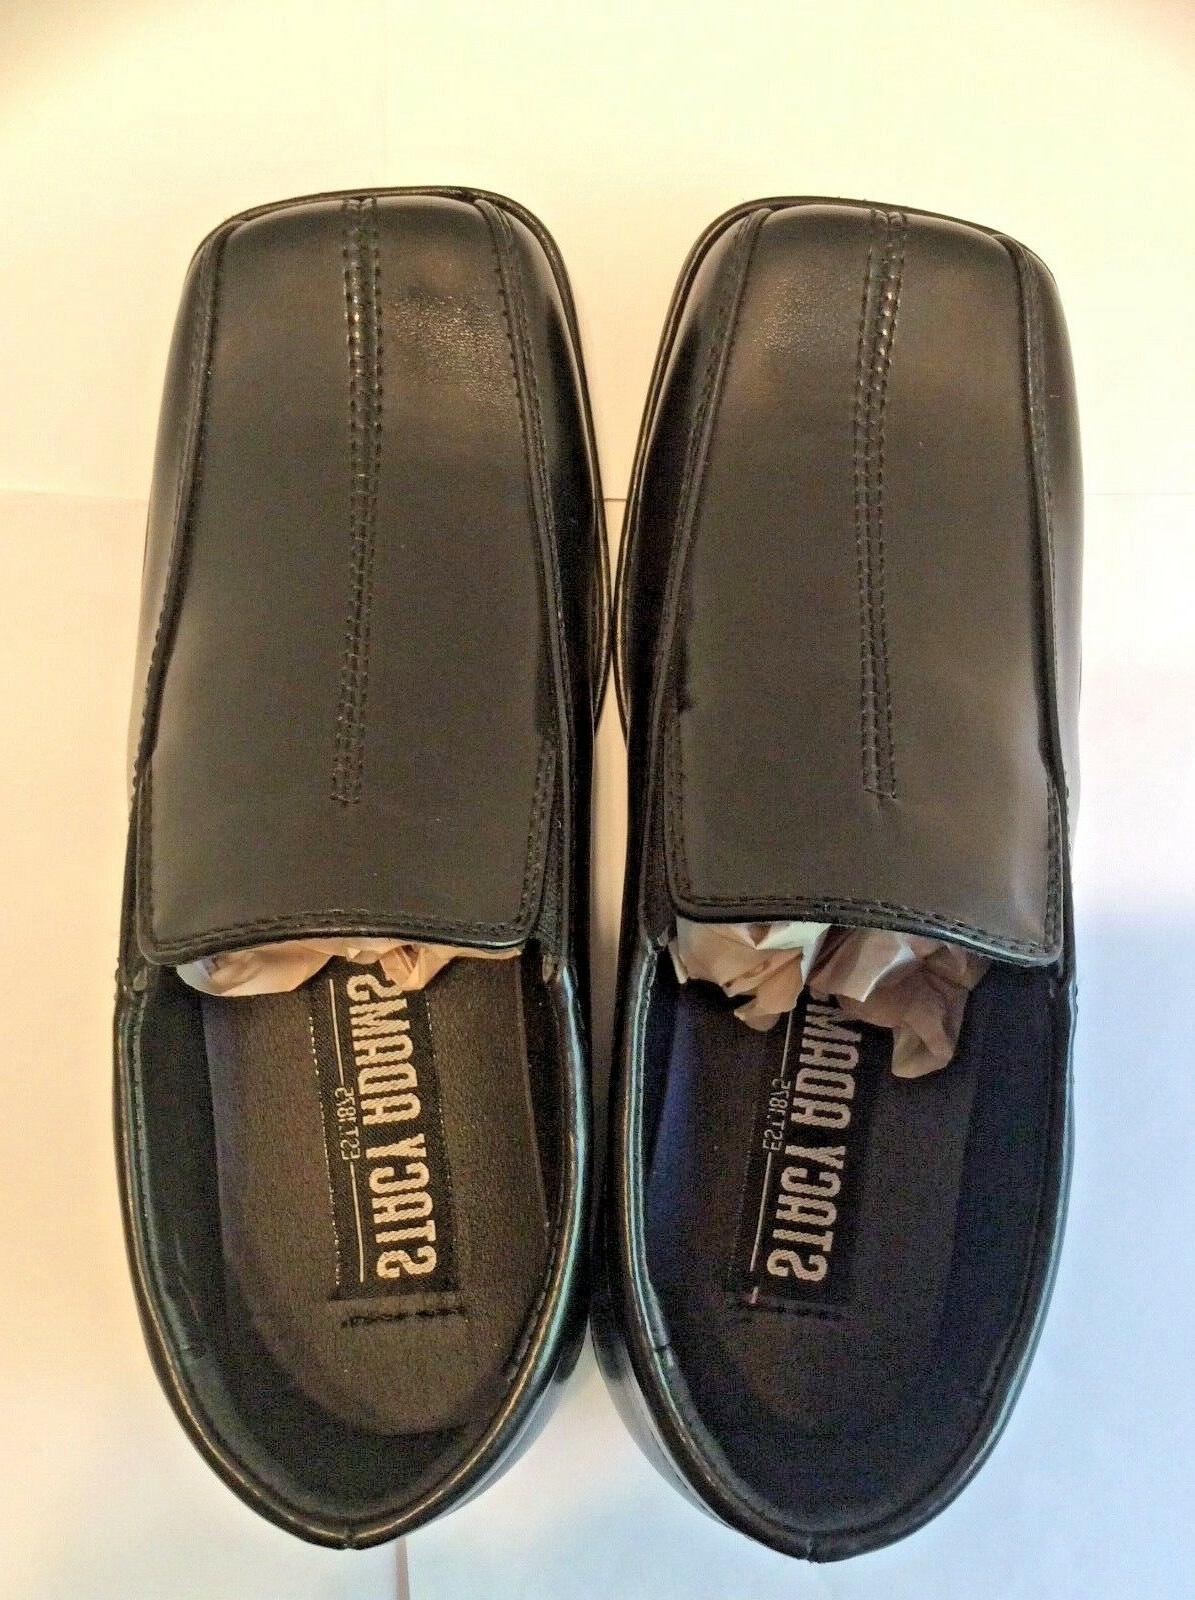 New Stacy Boys Black Square Toe Loafers Sz 12M